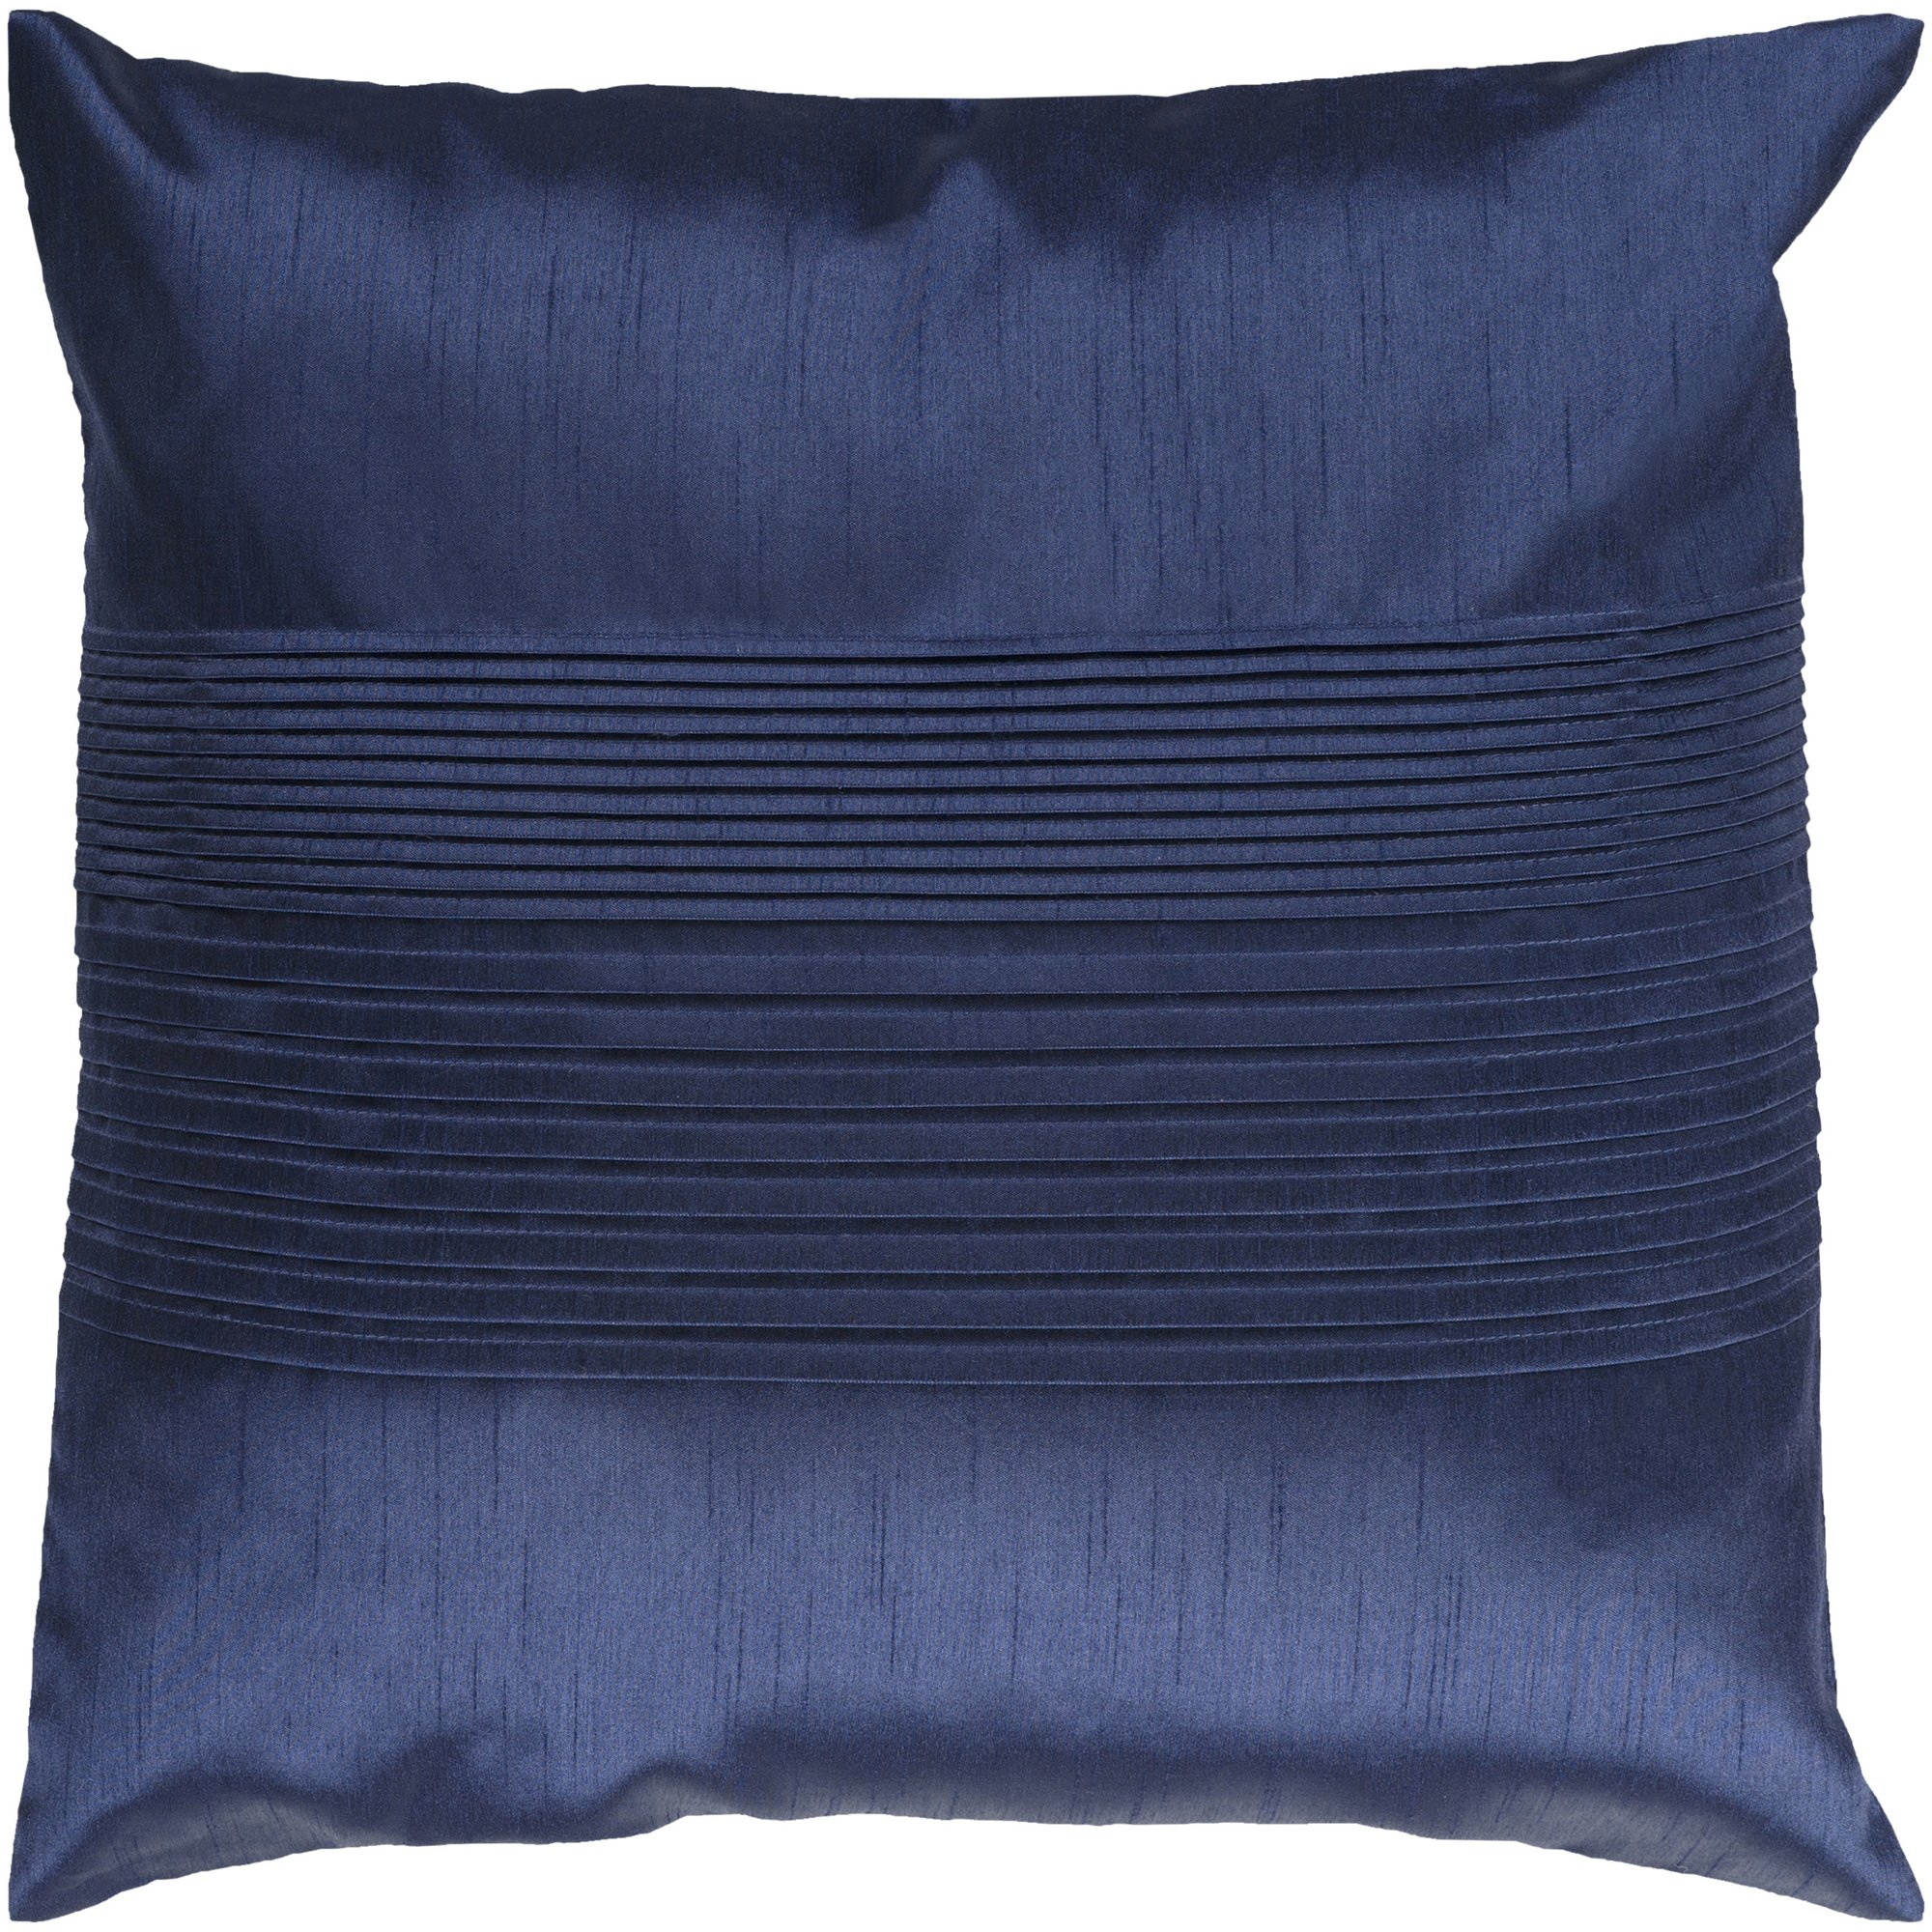 Surya HH-029 Hand Crafted 100% Polyester Navy 18'' x 18'' Solid Decorative Pillow